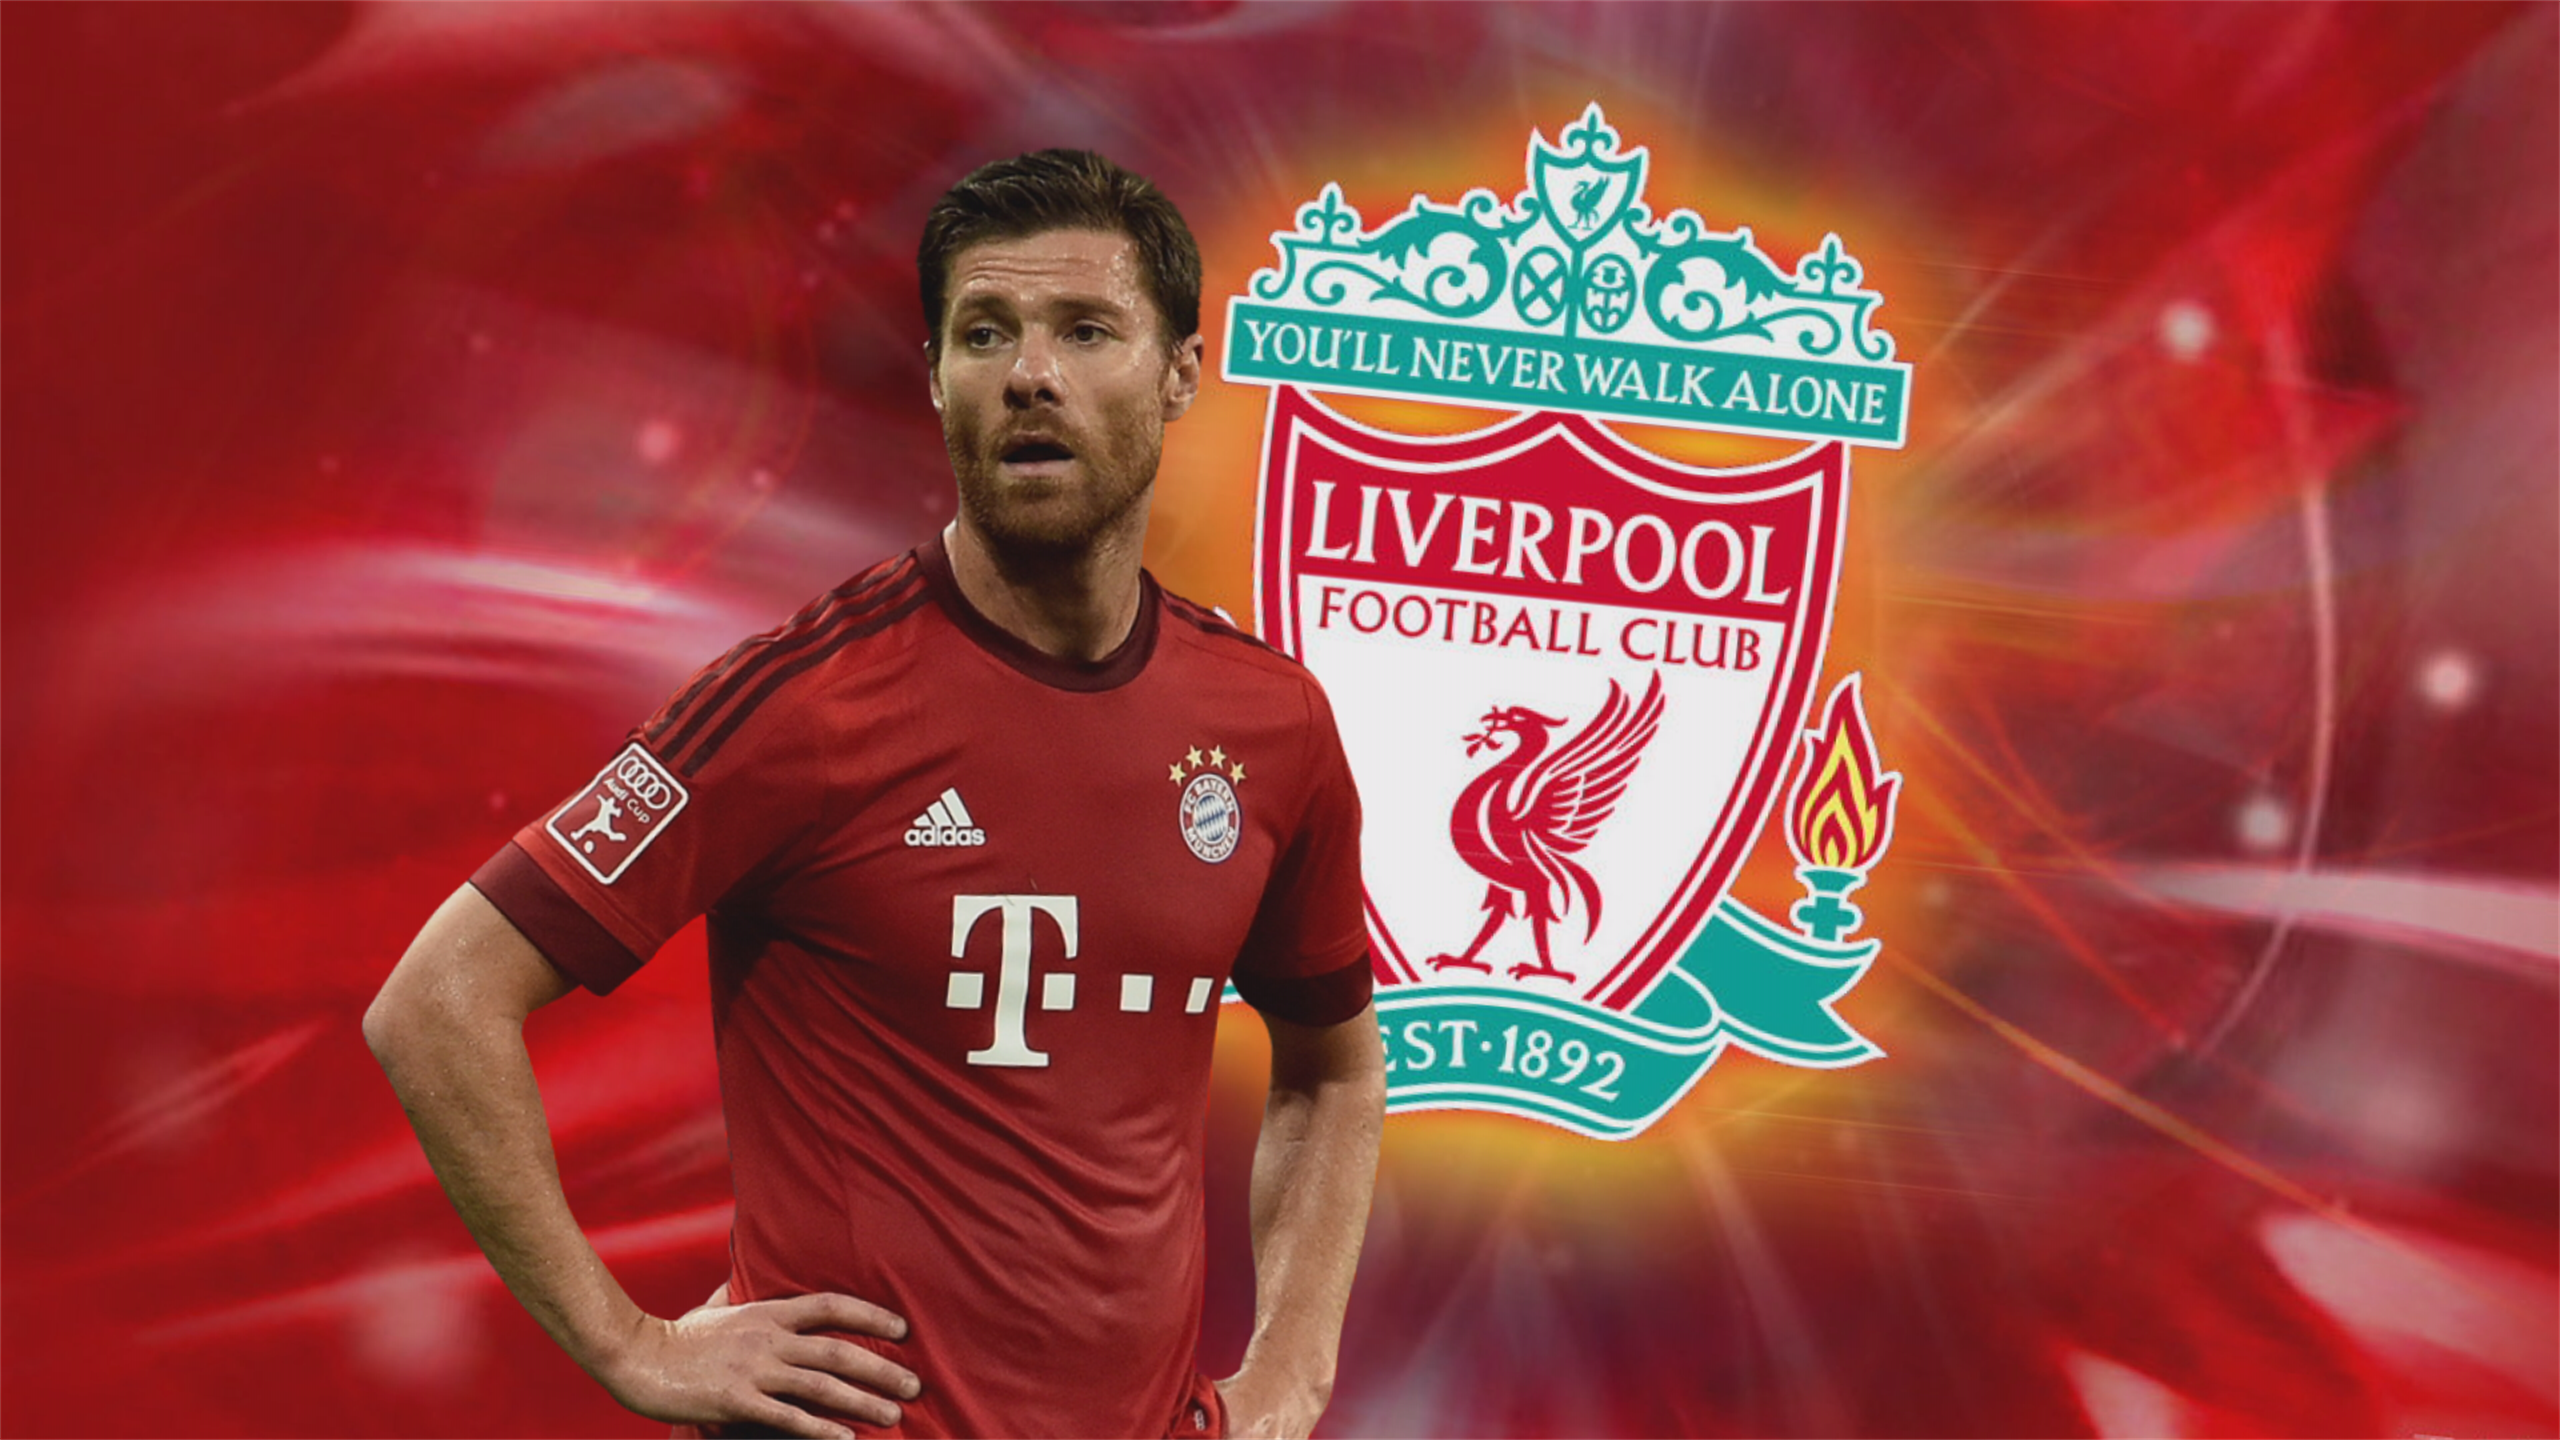 Xabi Alonso in sensational Liverpool return - Euro Papers